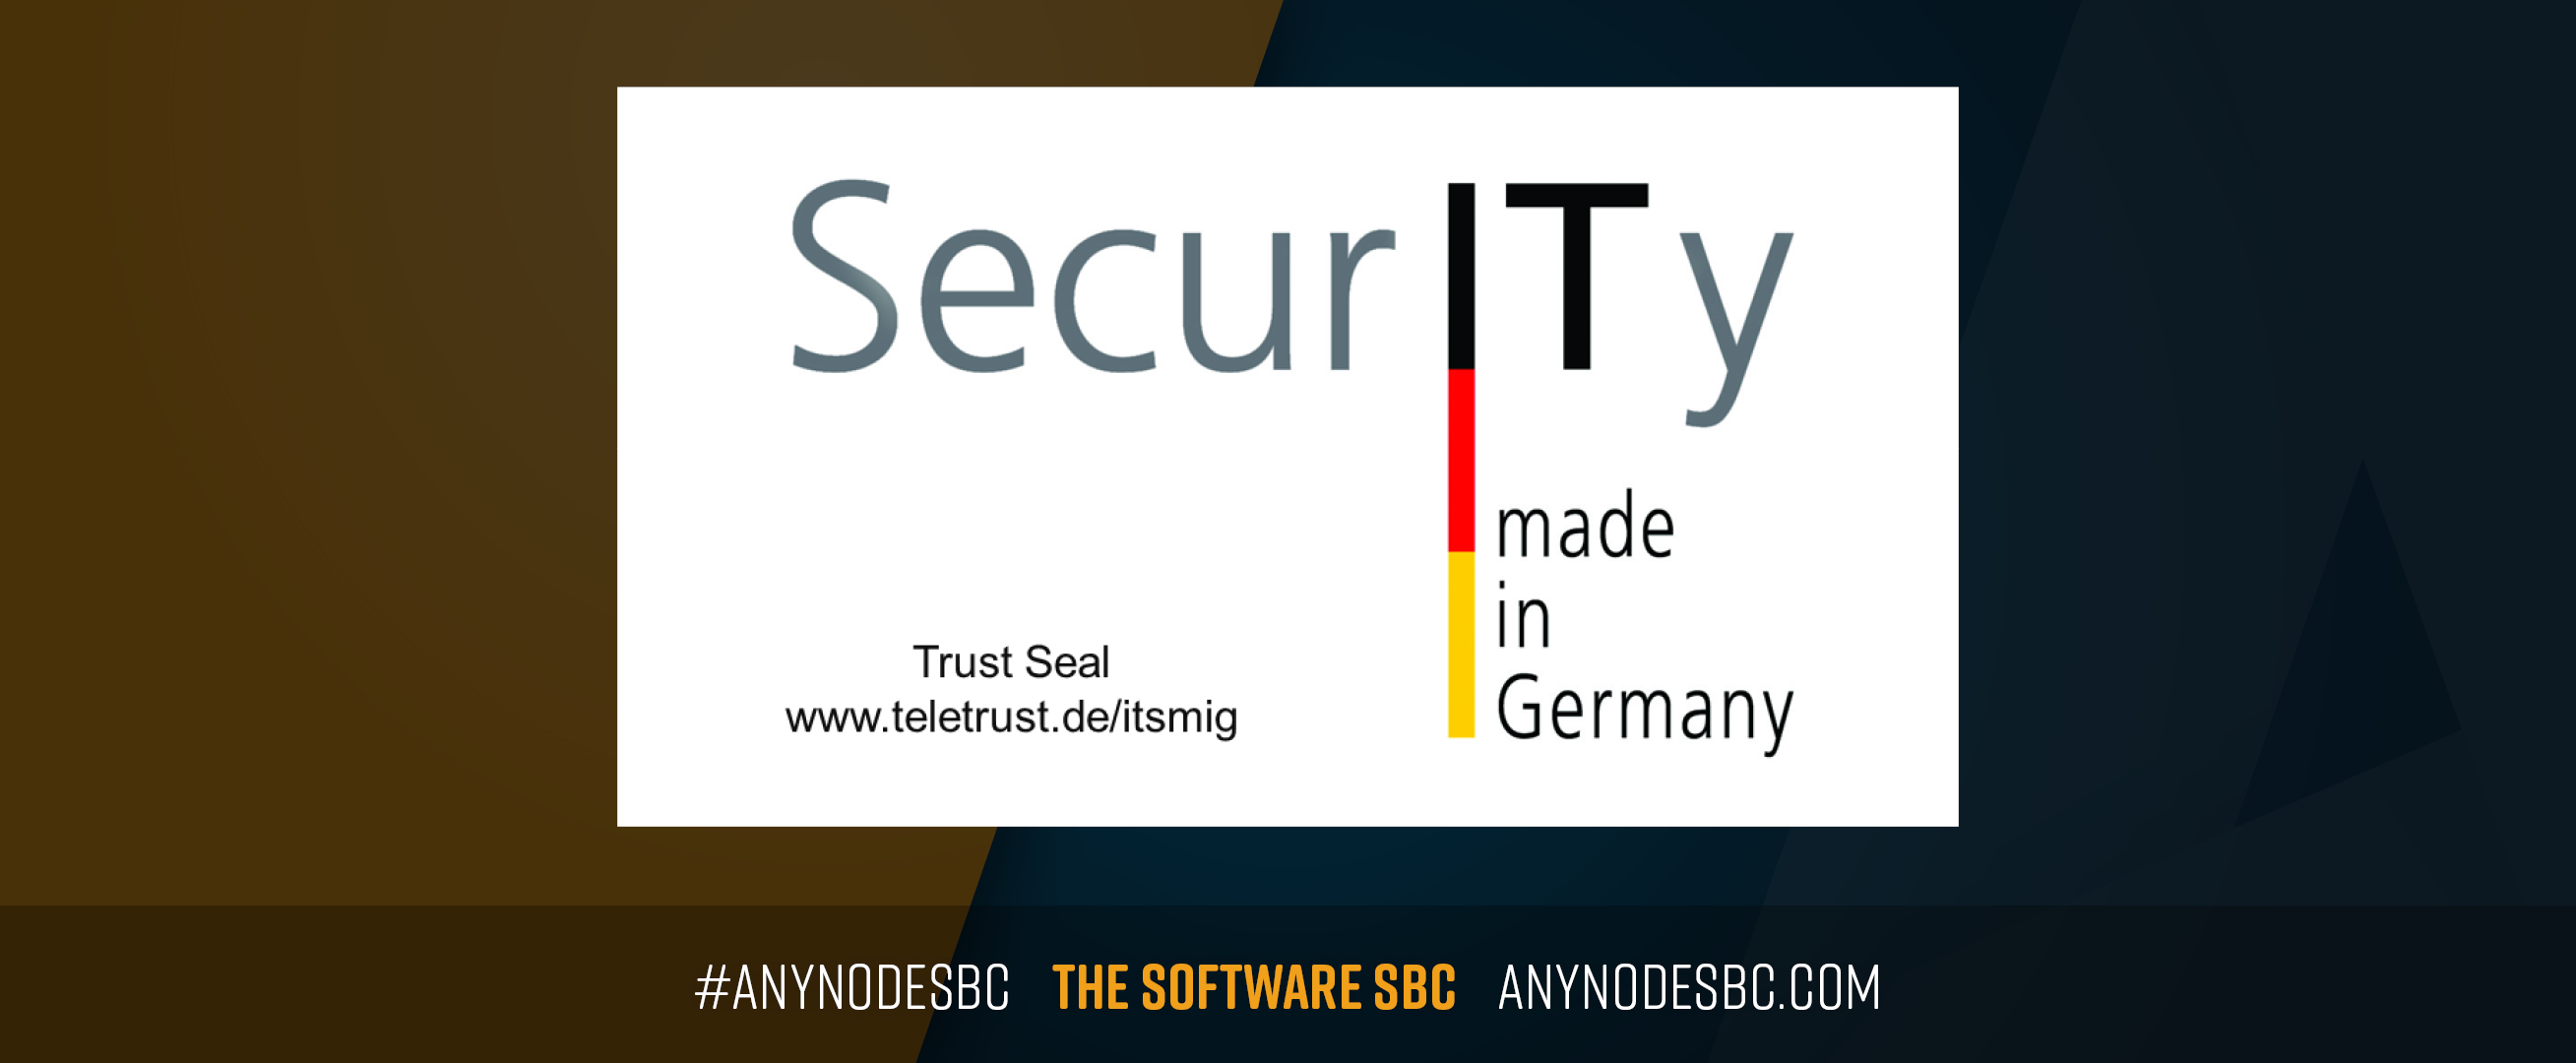 """TE-SYSTEMS awarded the """"IT Security made in Germany"""" seal of quality"""